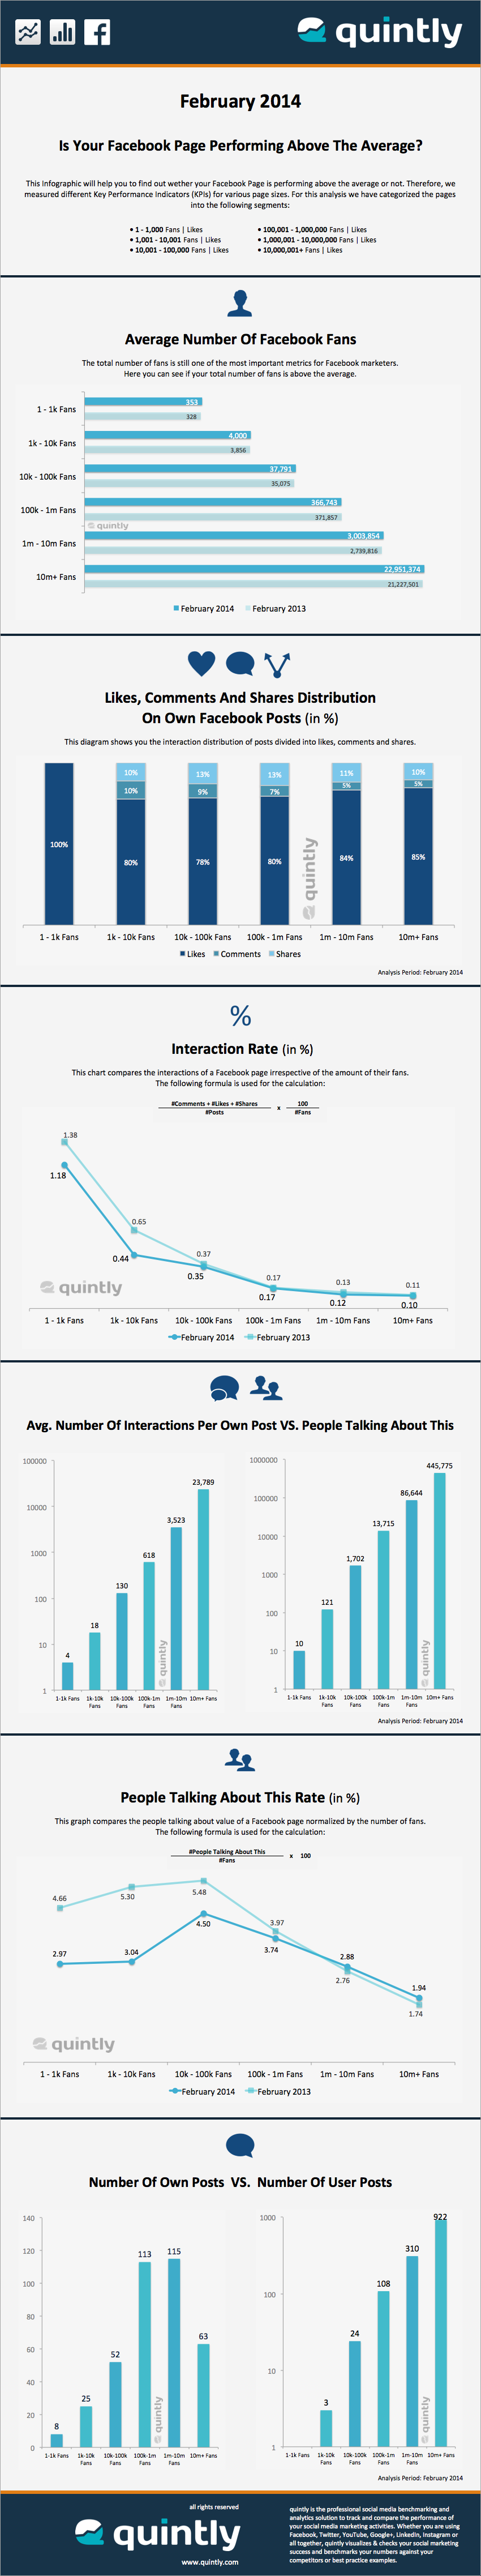 quintly Infographic - February 2014: The Average Facebook Page Performance